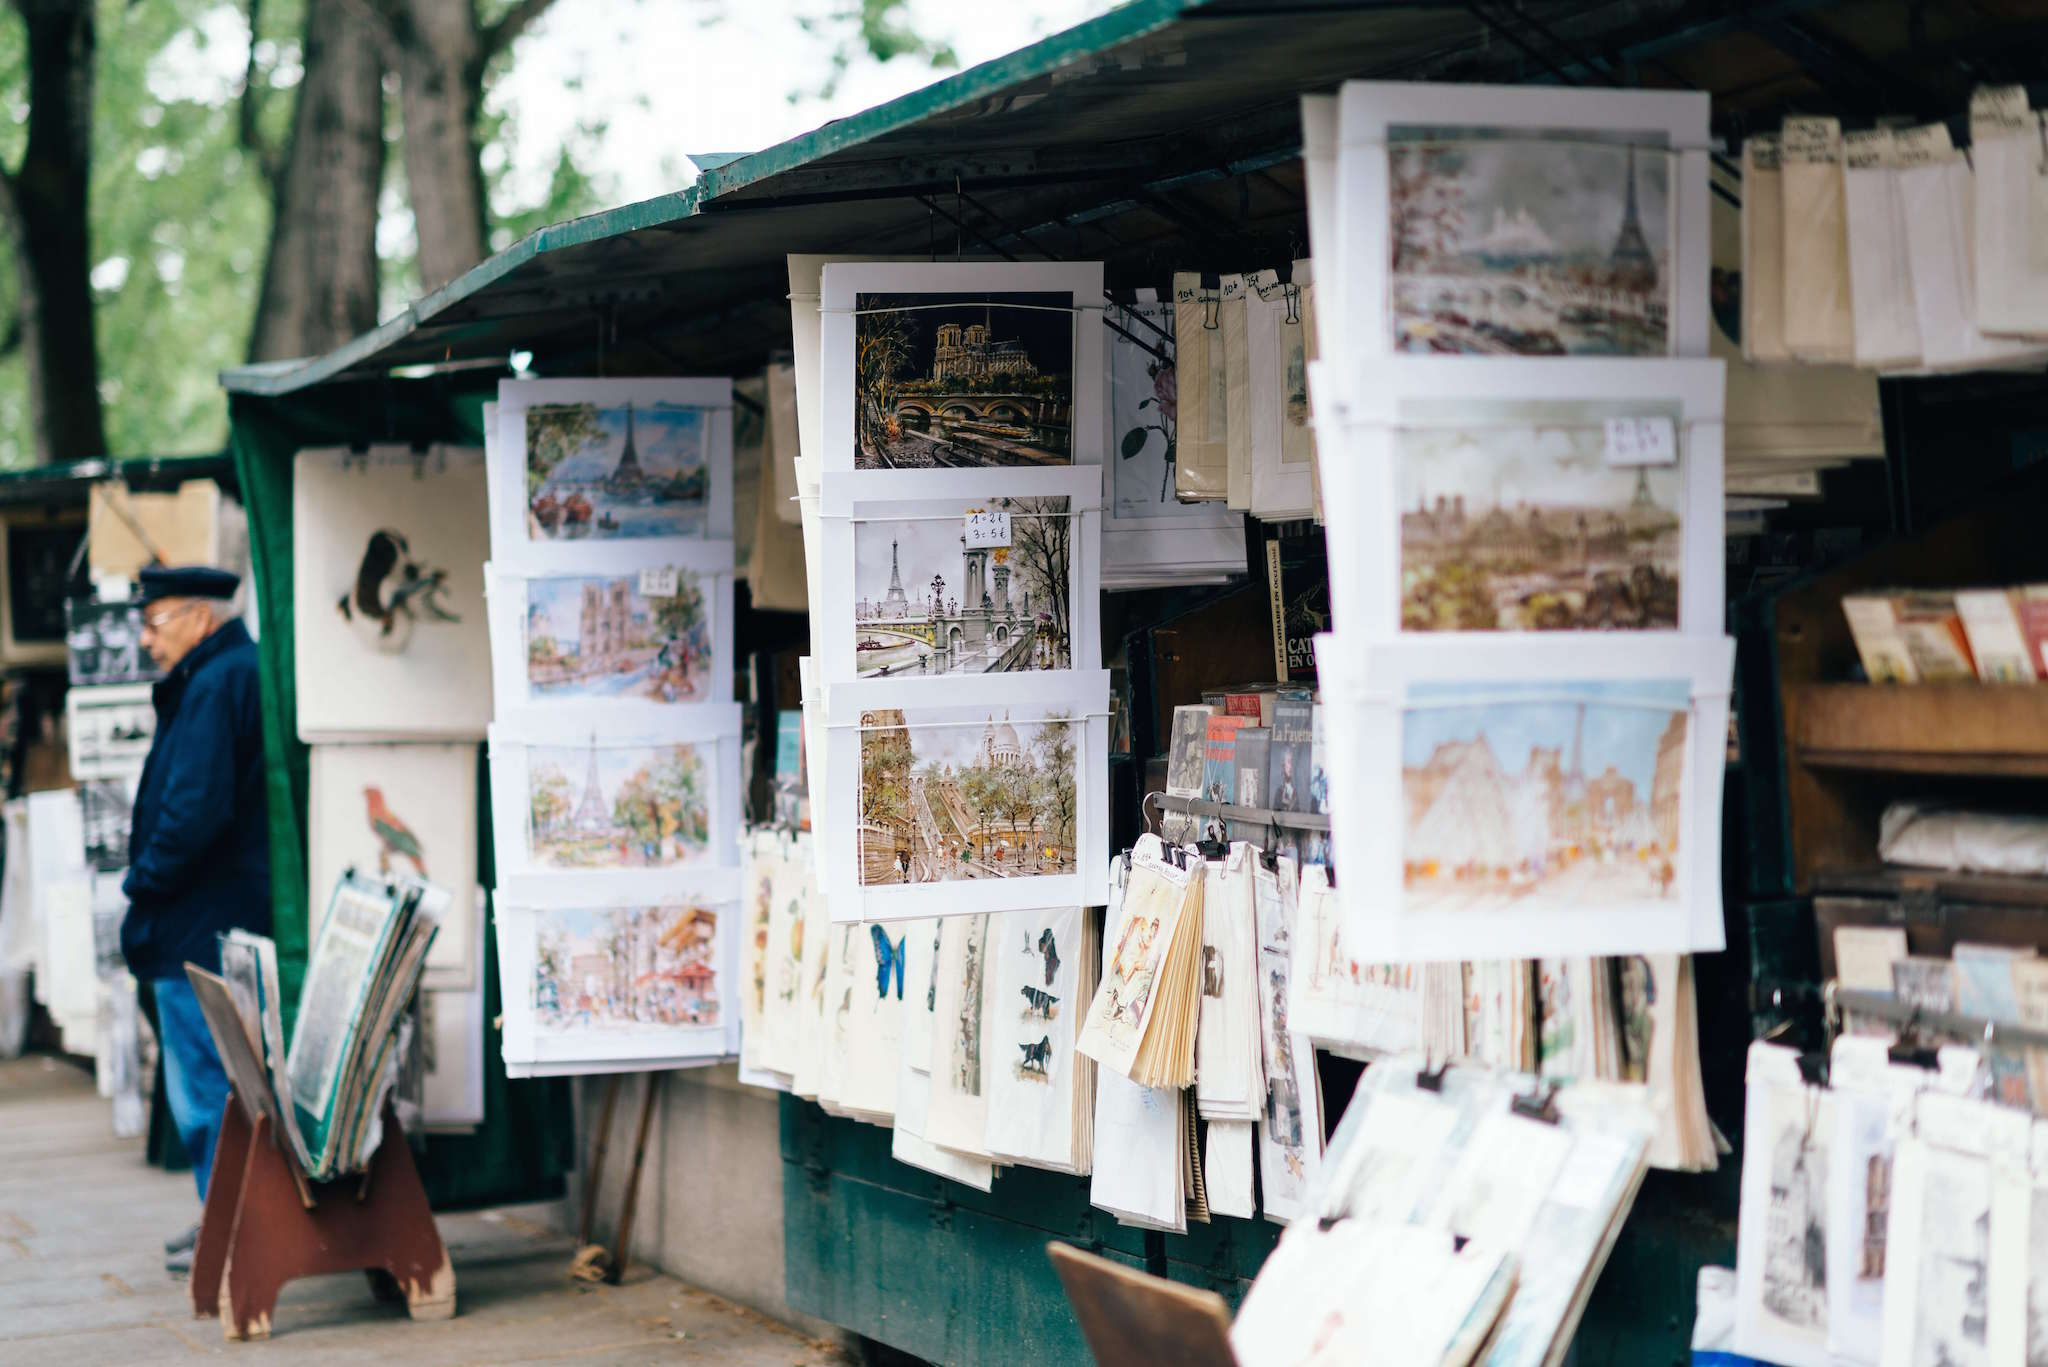 An old man stands by stalls of art near the Seine in Pairs. Beautiful paintings that display scenes of Paris can be seen hanging from the stalls.